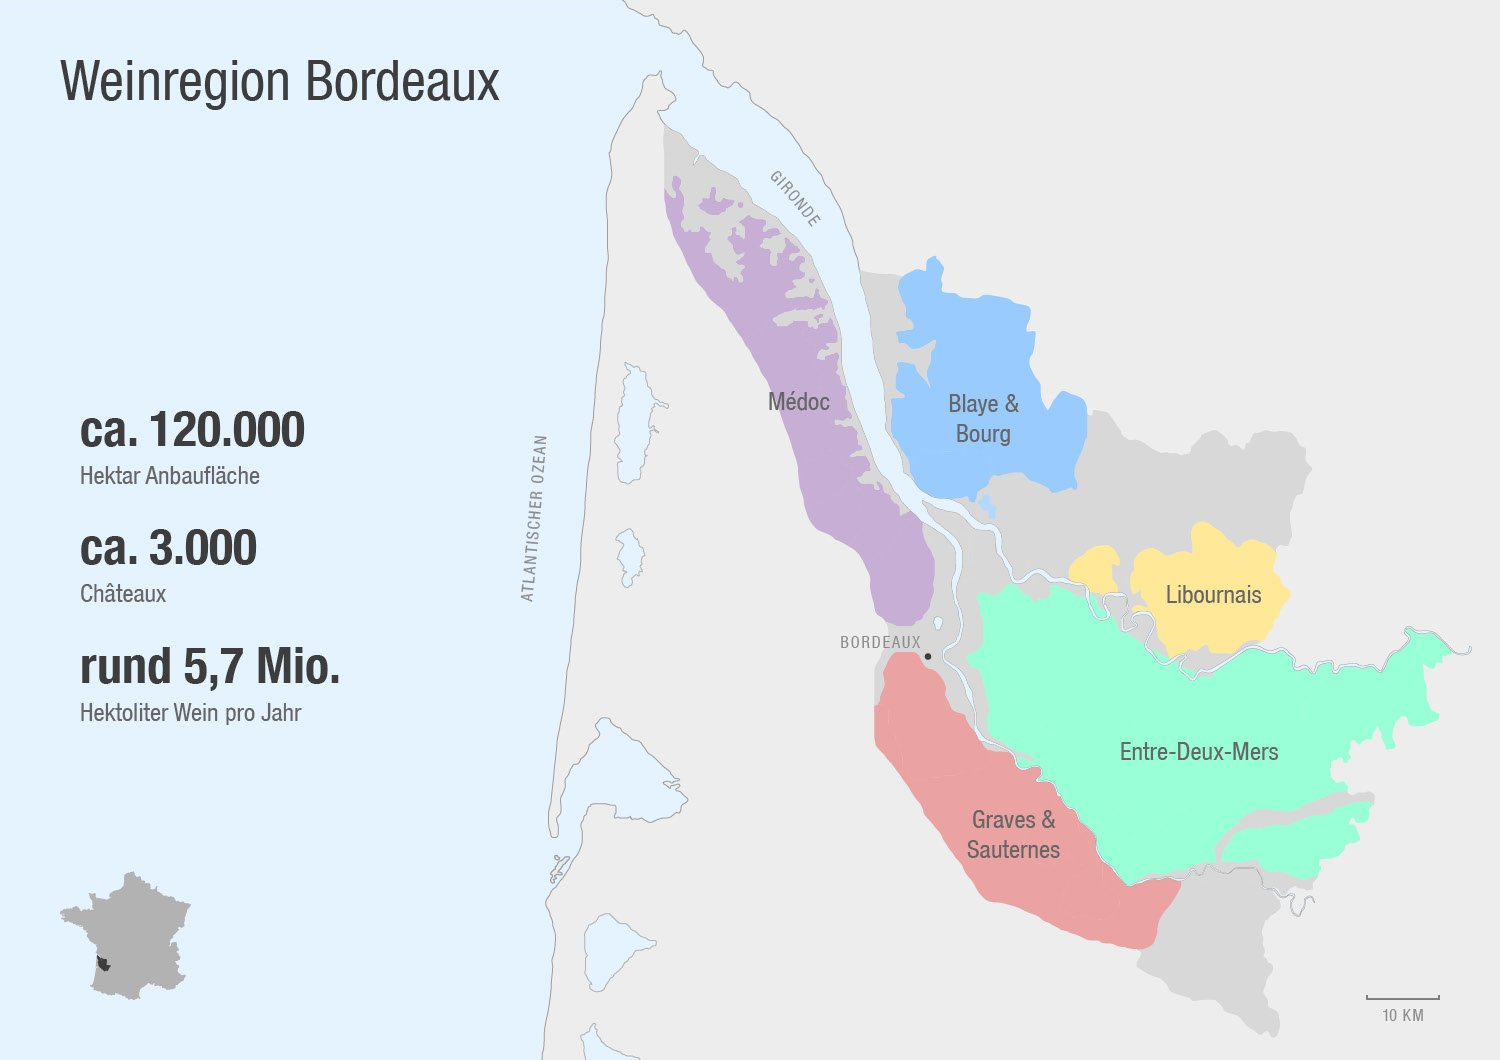 bordeaux karte Weinregion Bordeaux   Rebsorten, Klassifikationen & Co.   Teil 1